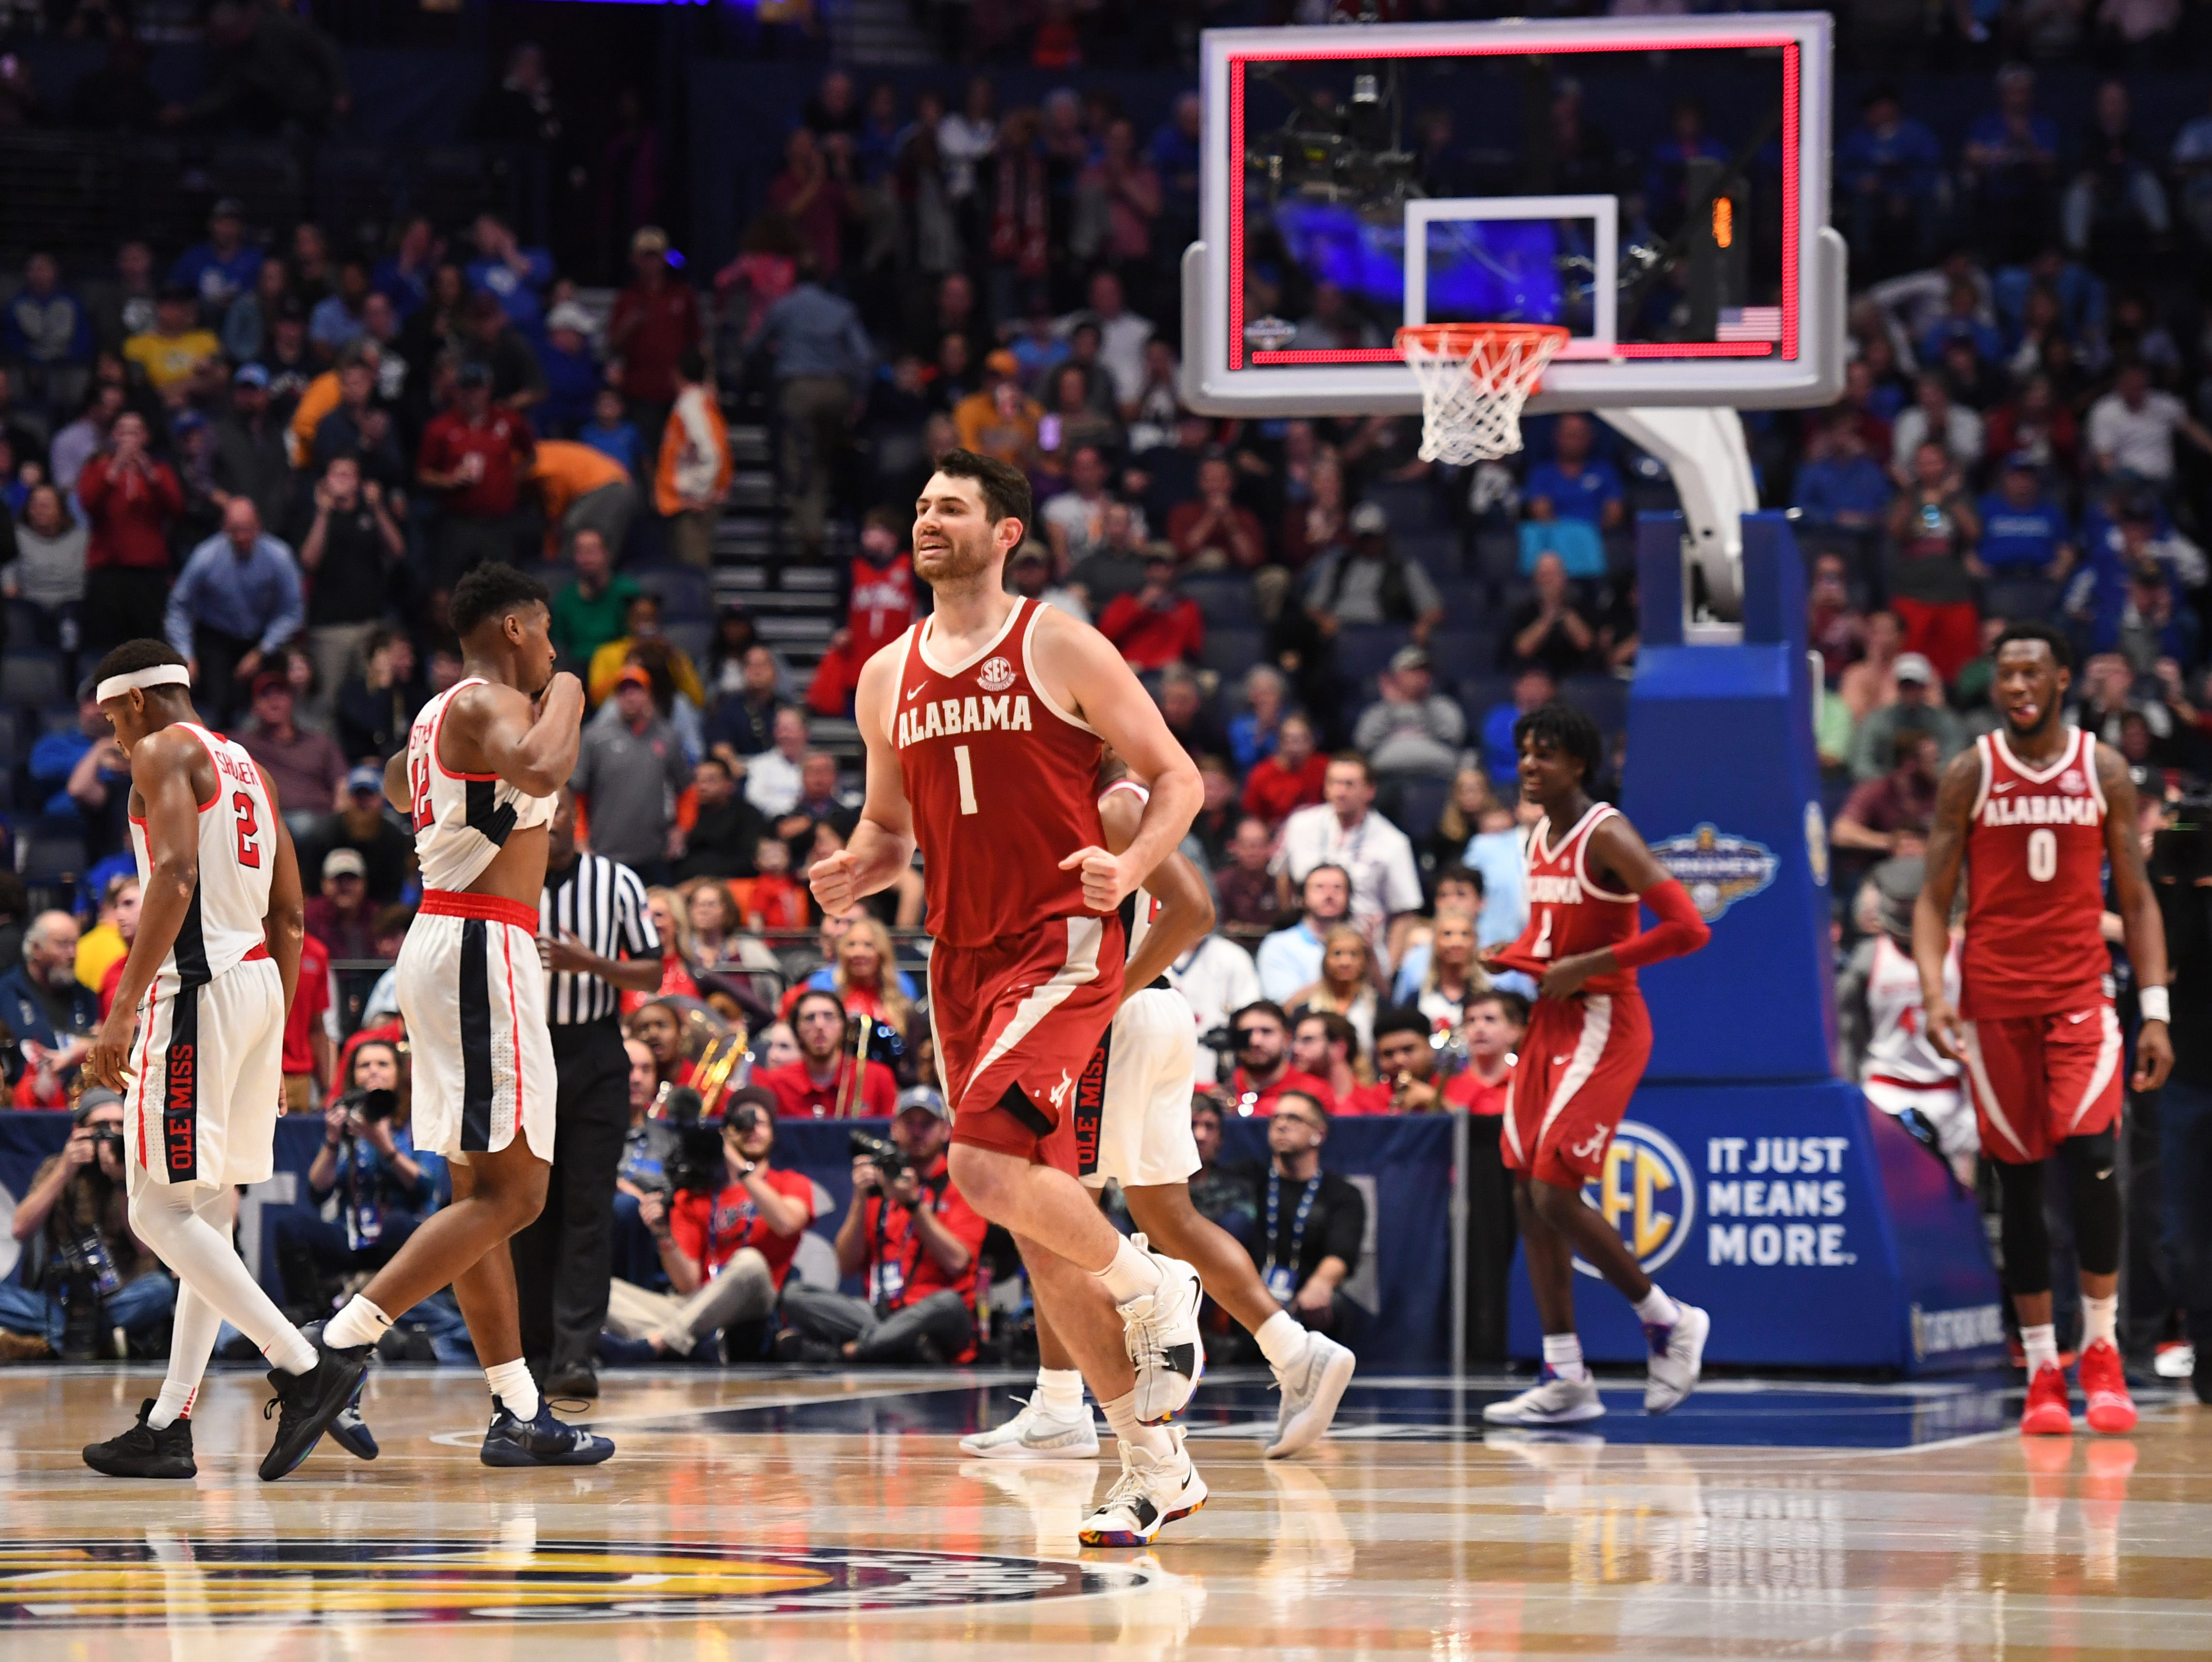 Mar 14, 2019; Nashville, TN, USA; Alabama Crimson Tide guard Riley Norris (1) celebrates after a win against the Mississippi Rebels in the SEC conference tournament at Bridgestone Arena. Mandatory Credit: Christopher Hanewinckel-USA TODAY Sports